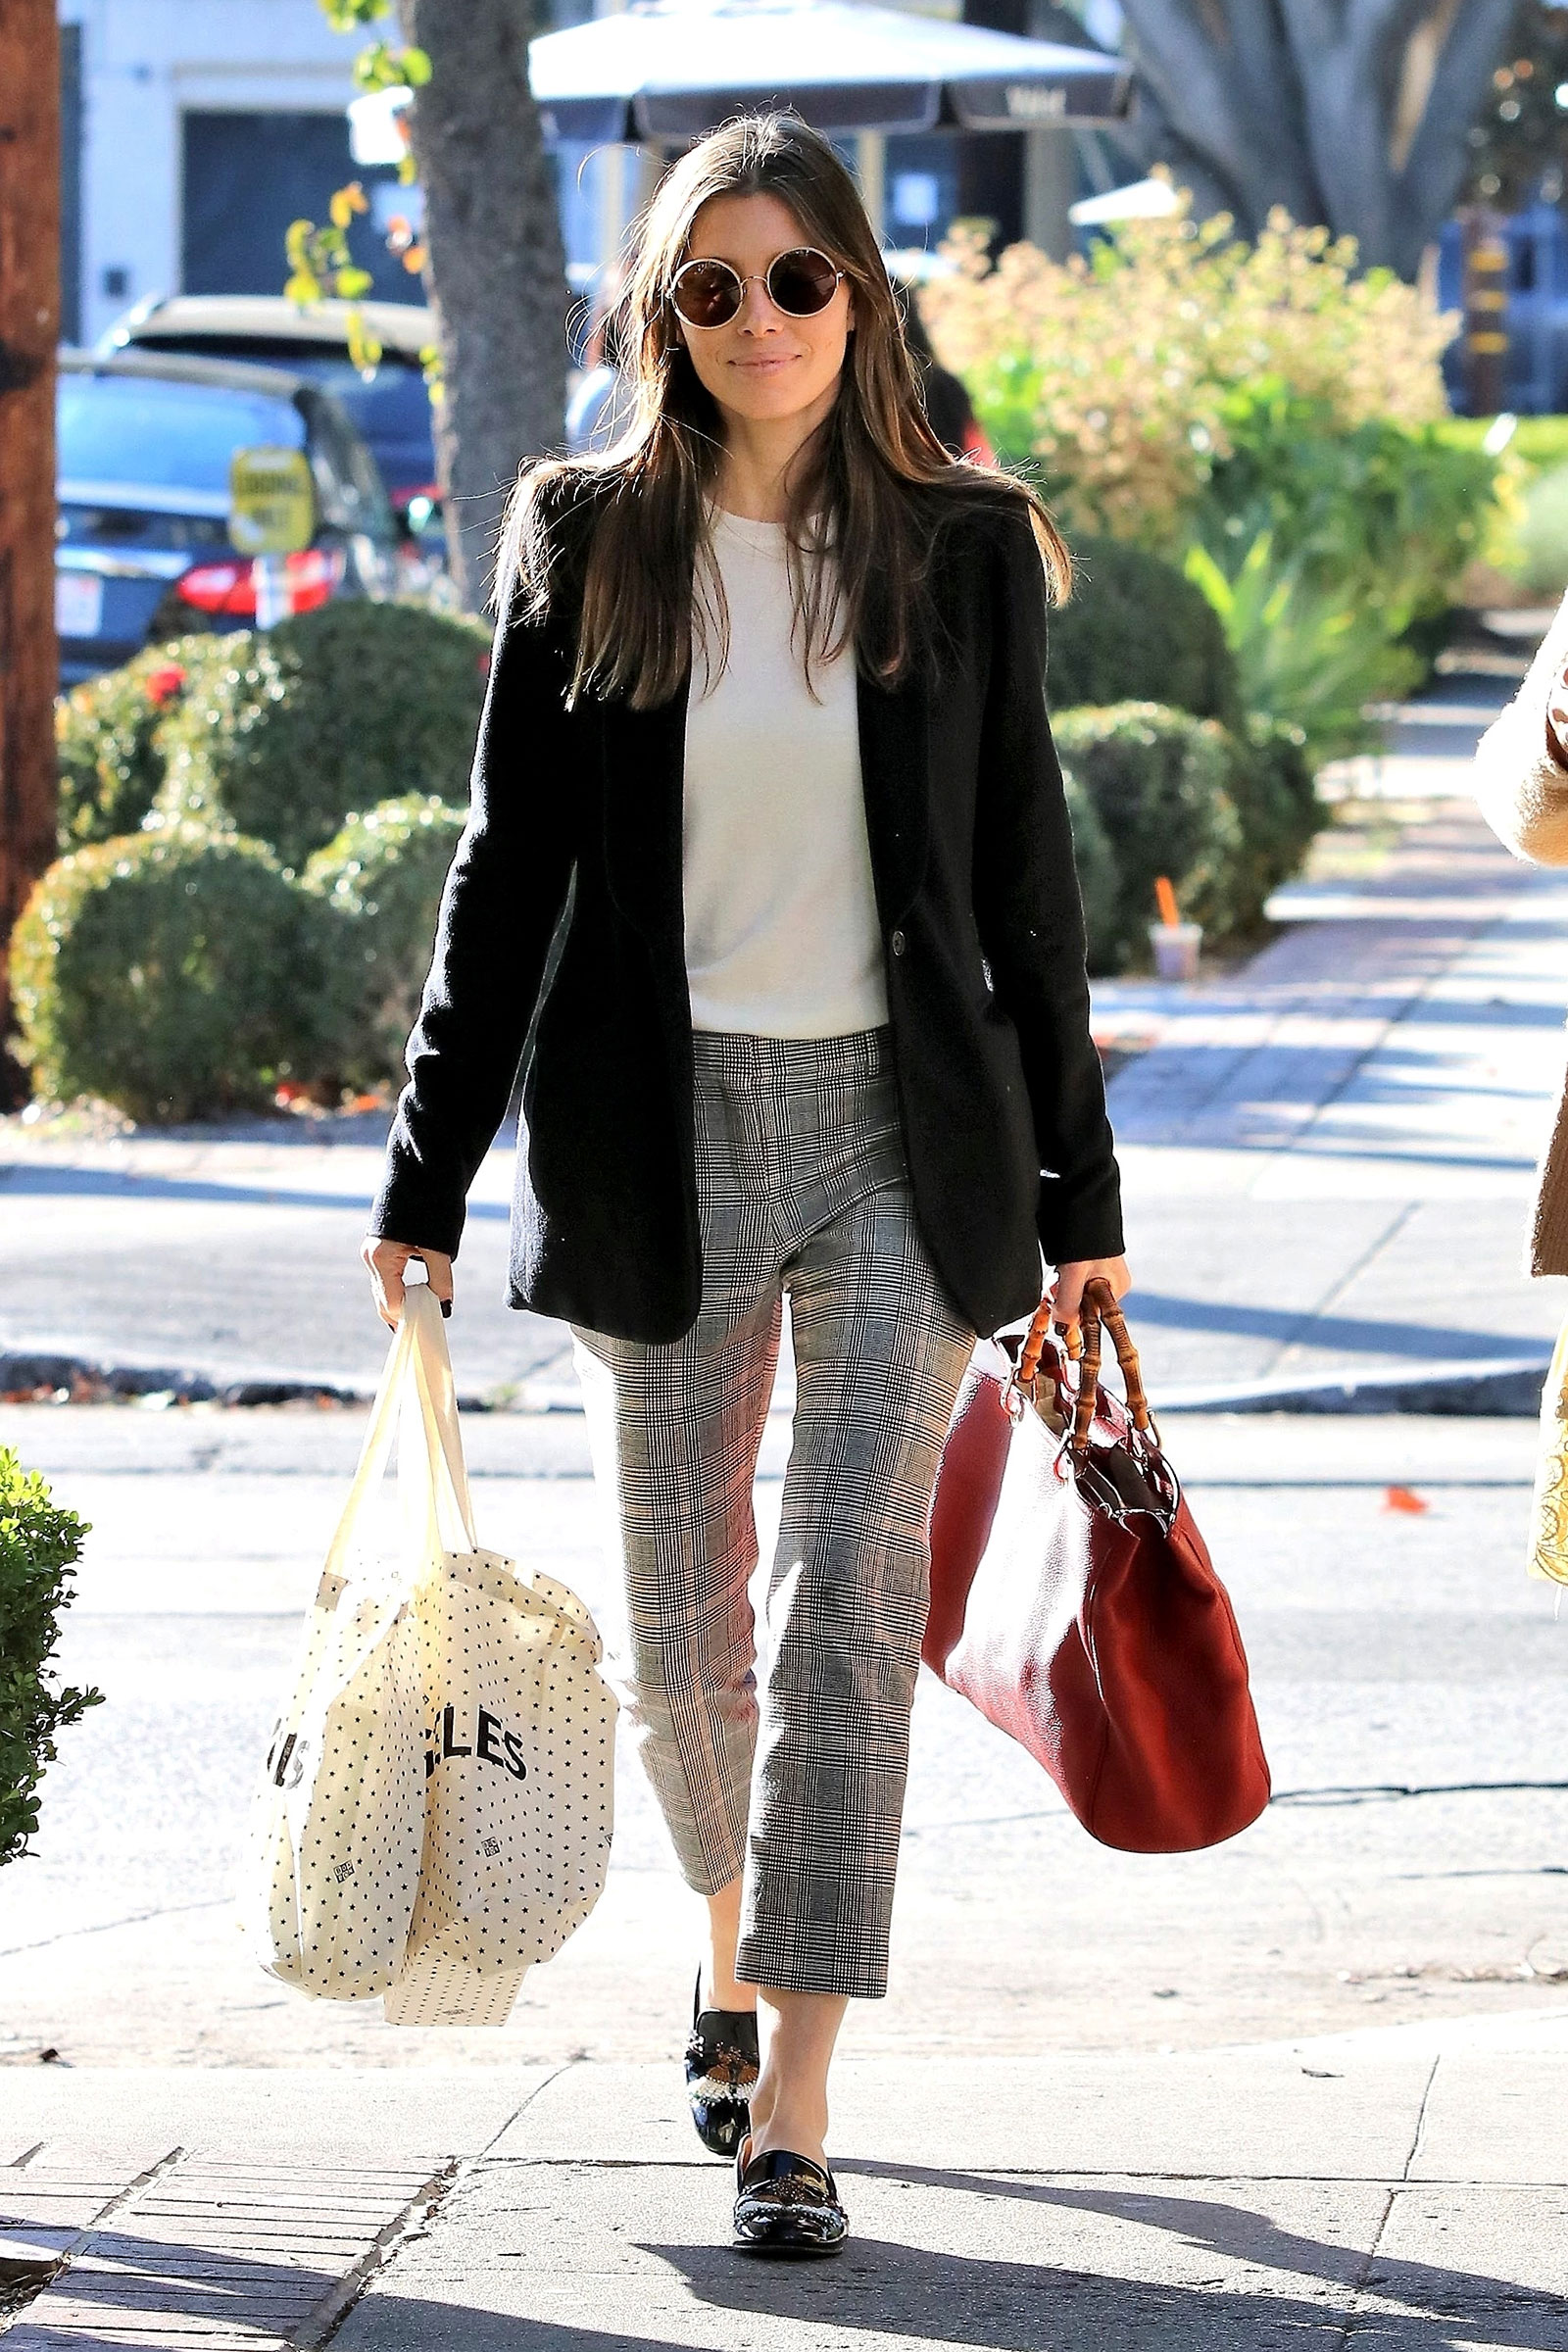 Jessica Biel's plaid check pants, blazer and loafers look for less